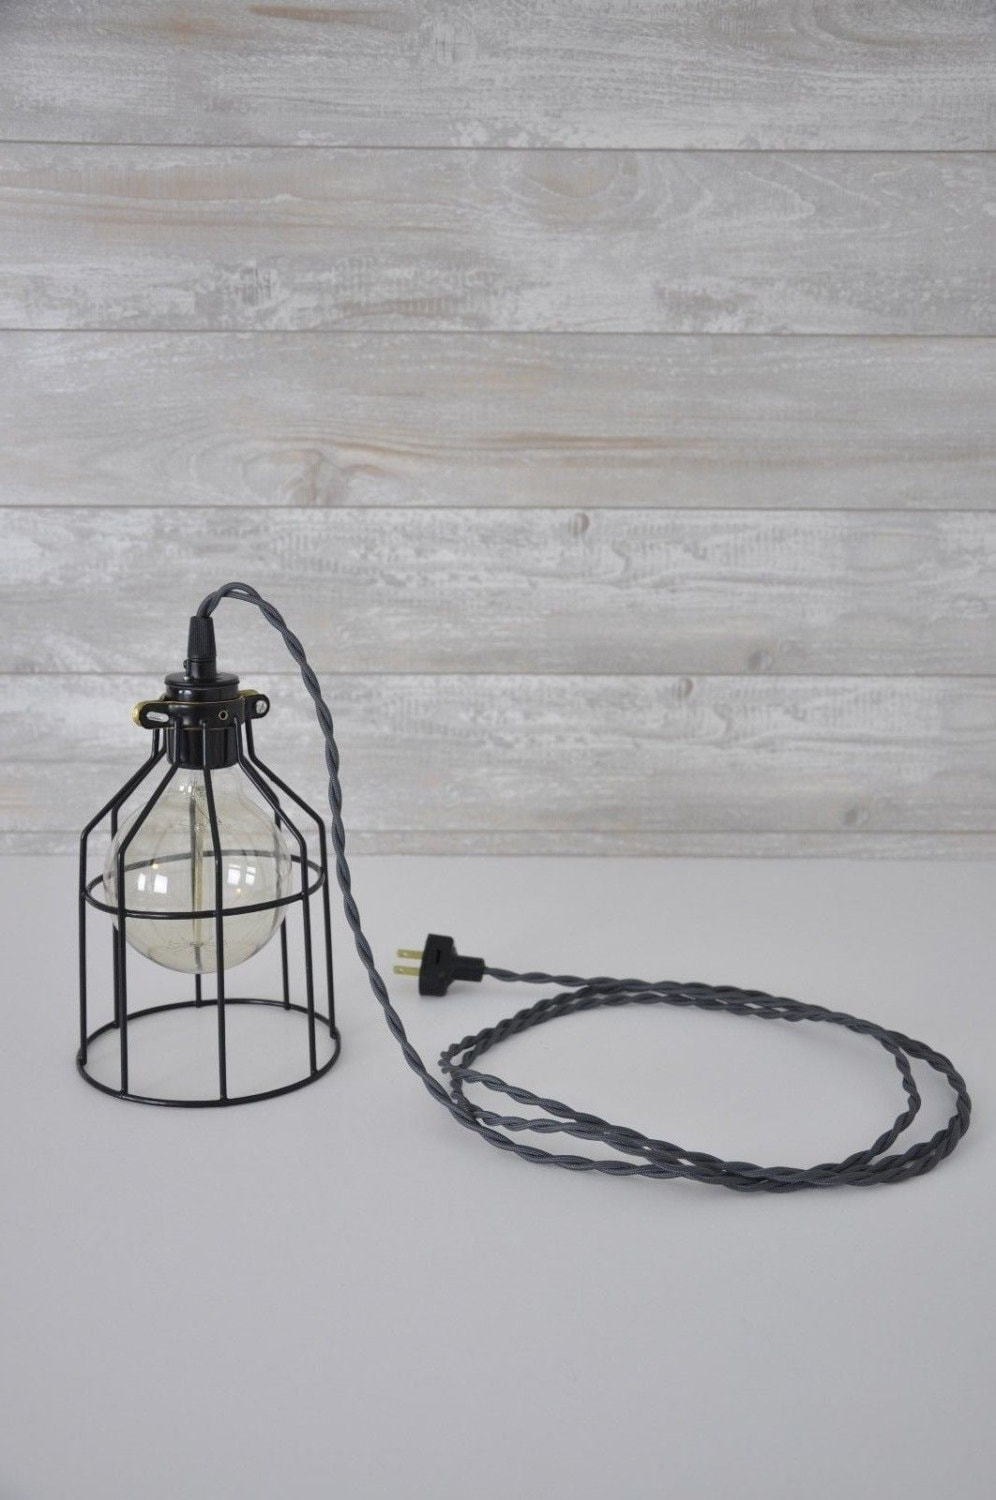 Cage Pendant Light Metal Bulb Guard Hanging Lights Drop Wiring A Plug To Fixture Industrial Lighting Edison Lamp In